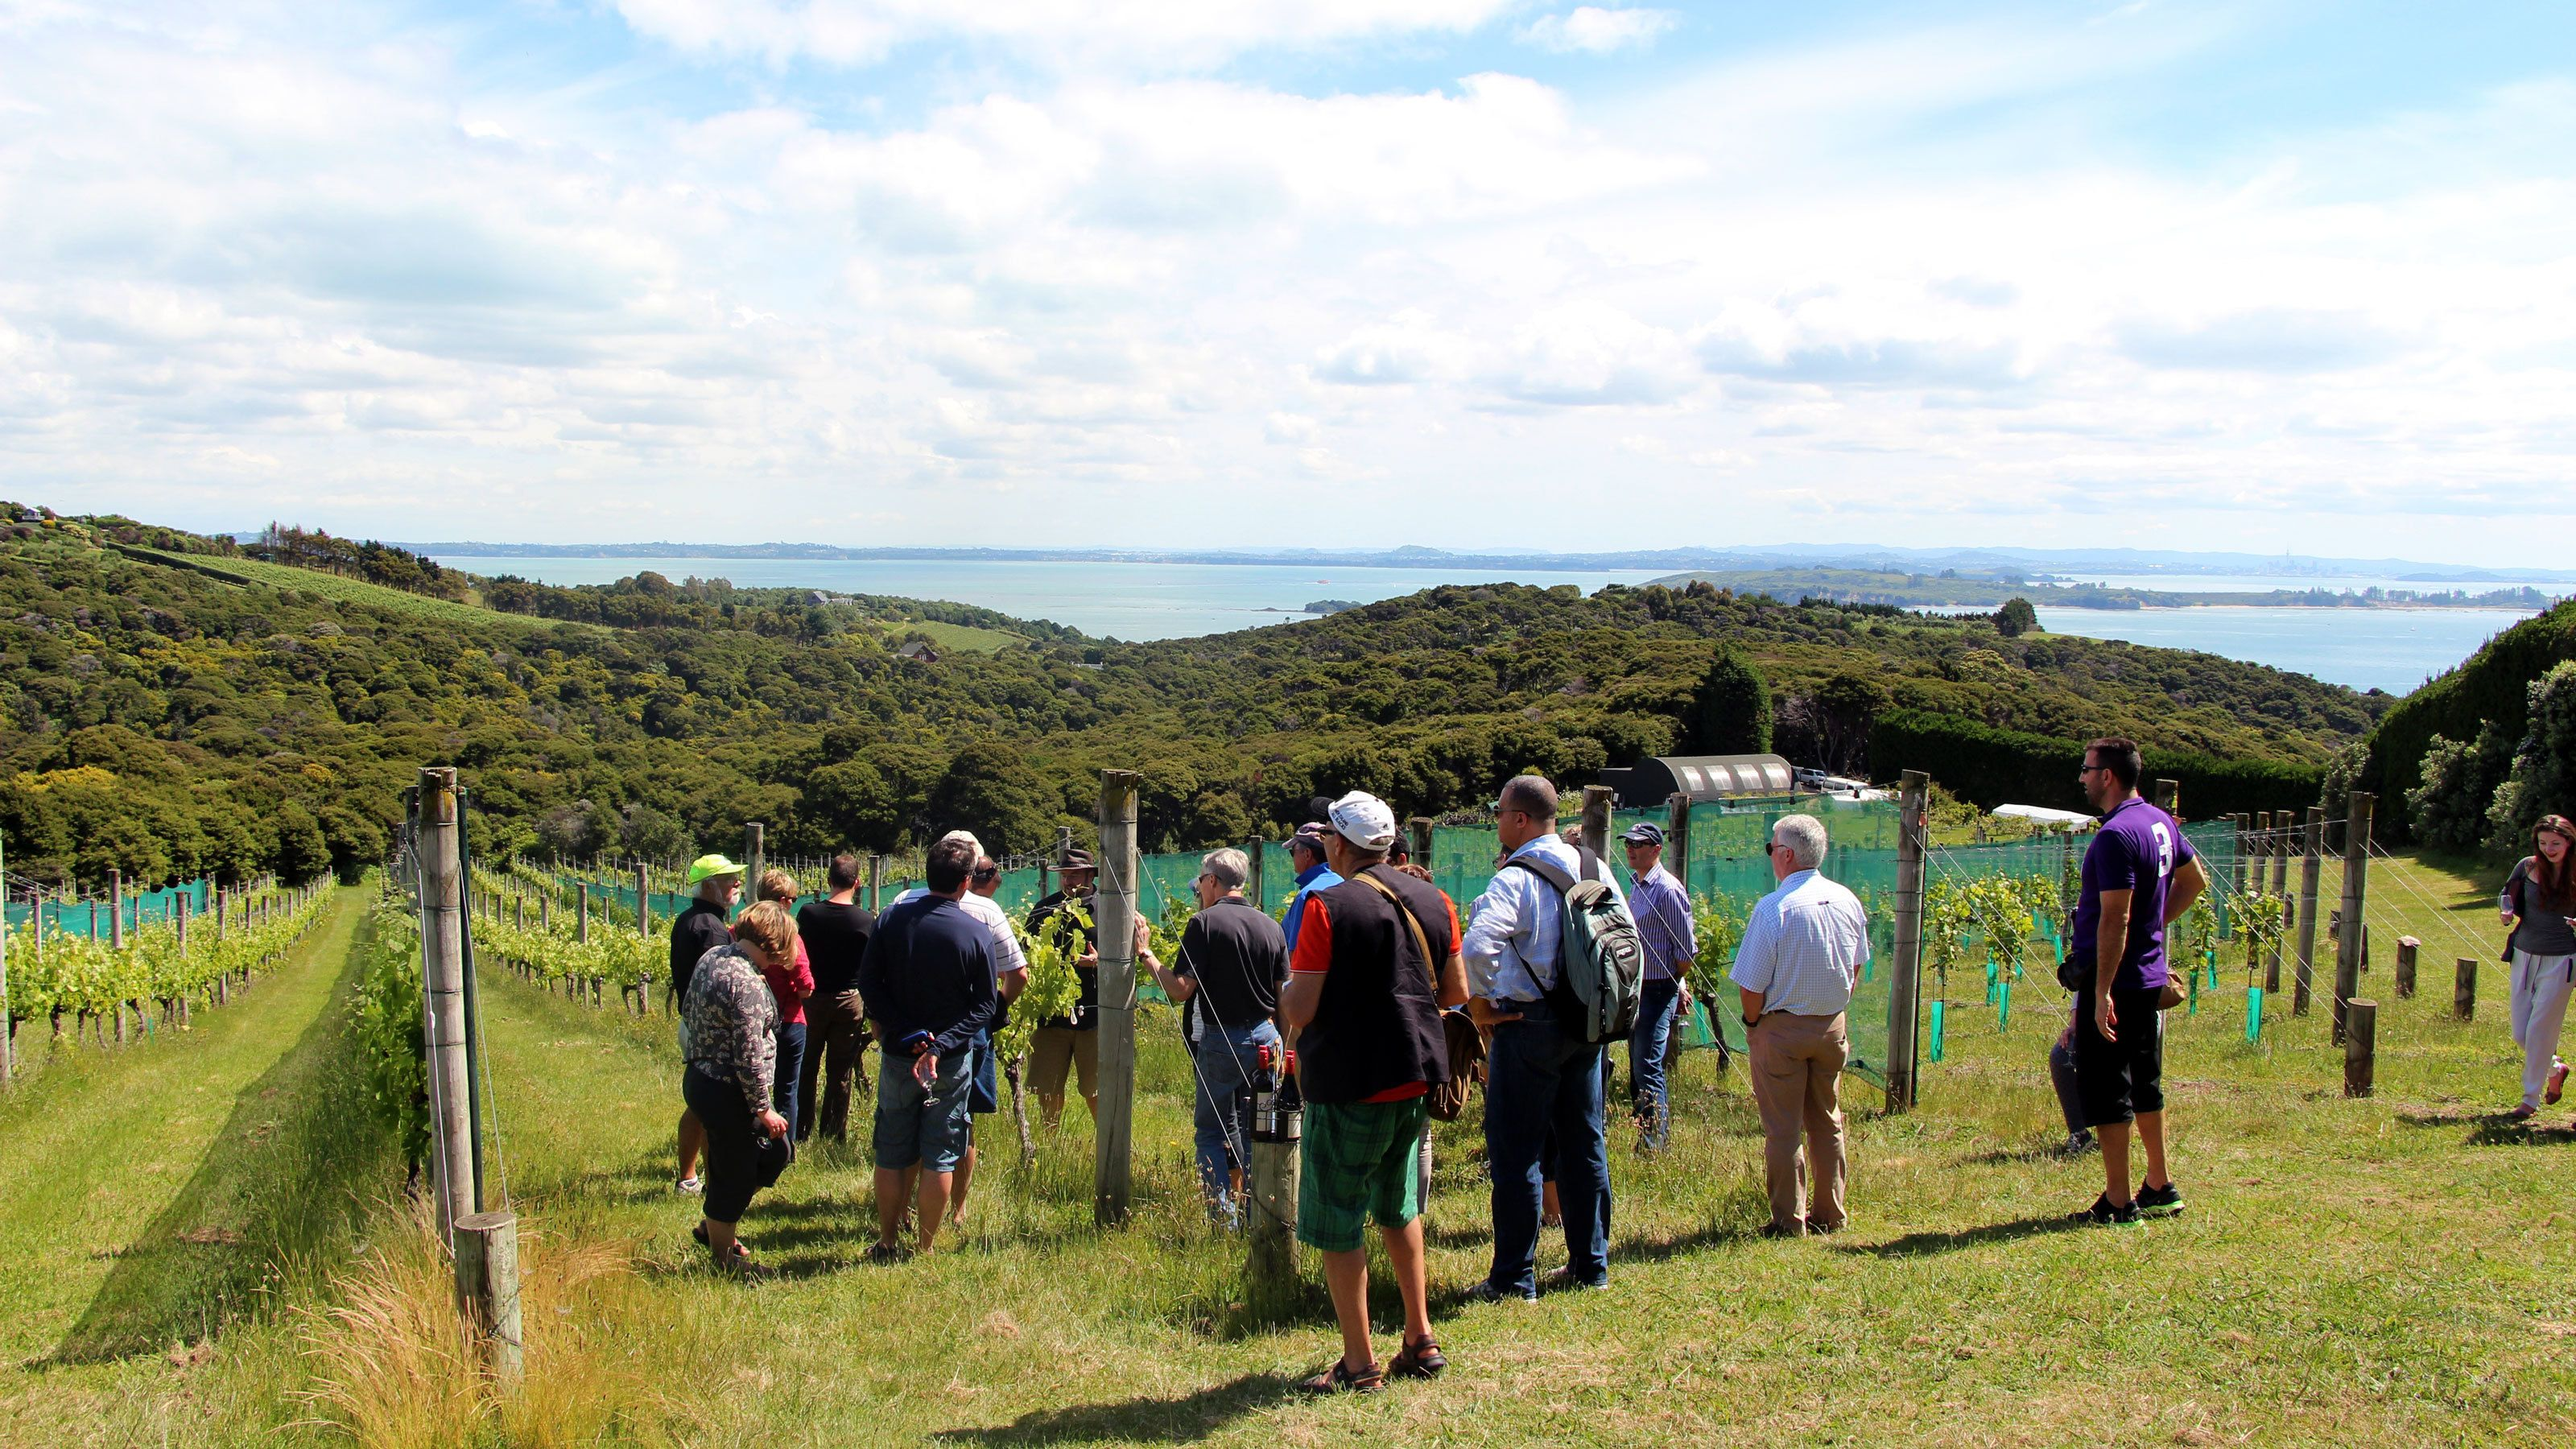 Tour group walking through the vines at a vineyard on Waiheka Island